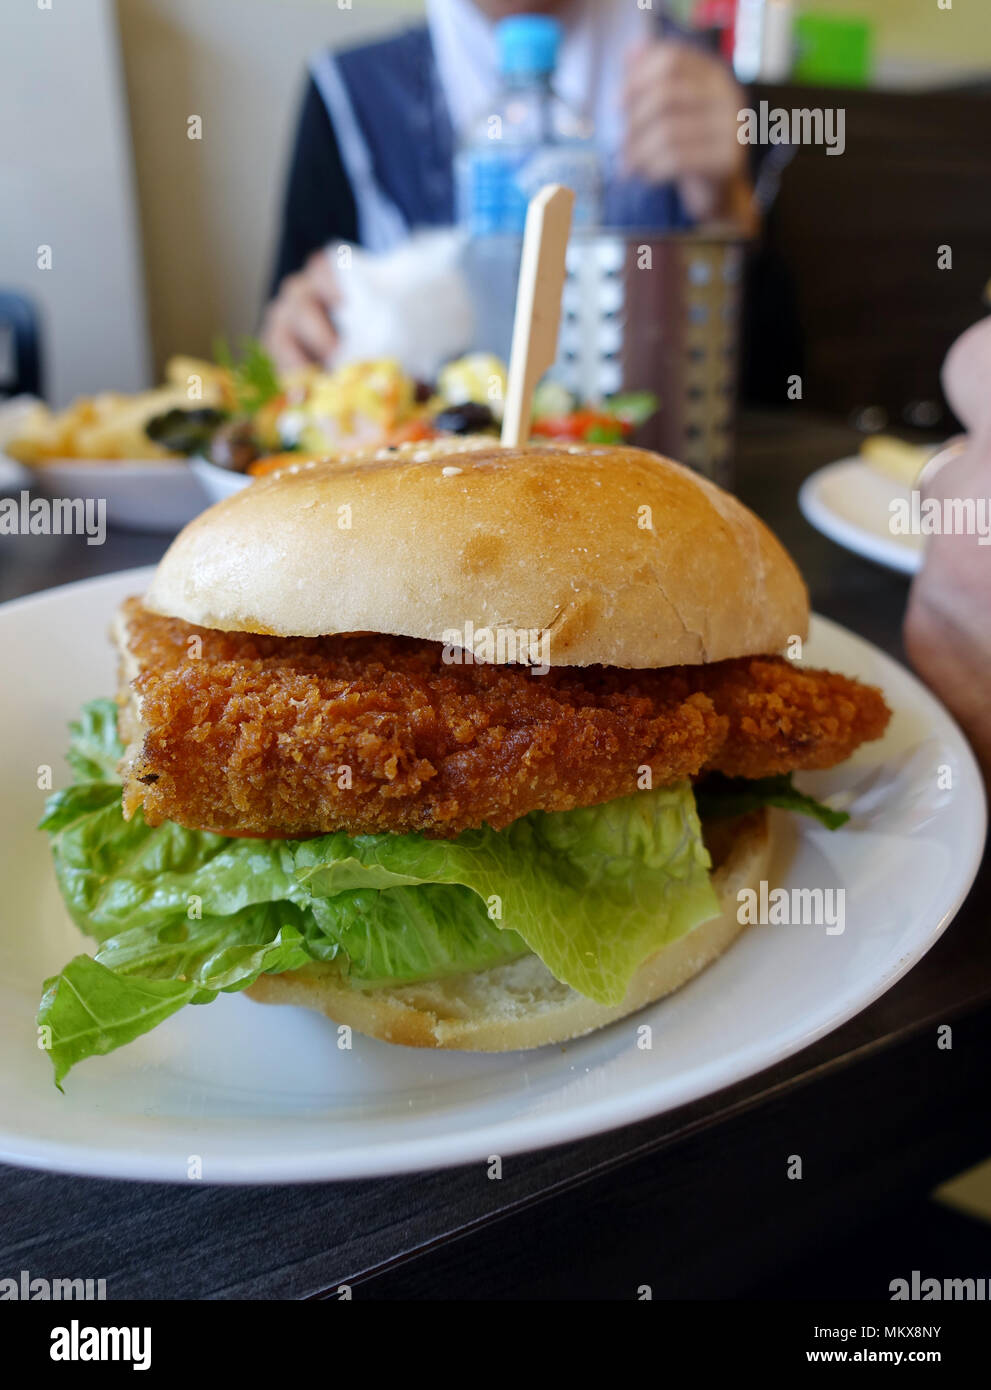 Chicken Schnitzel Burger On A White Plate Stock Photo Alamy